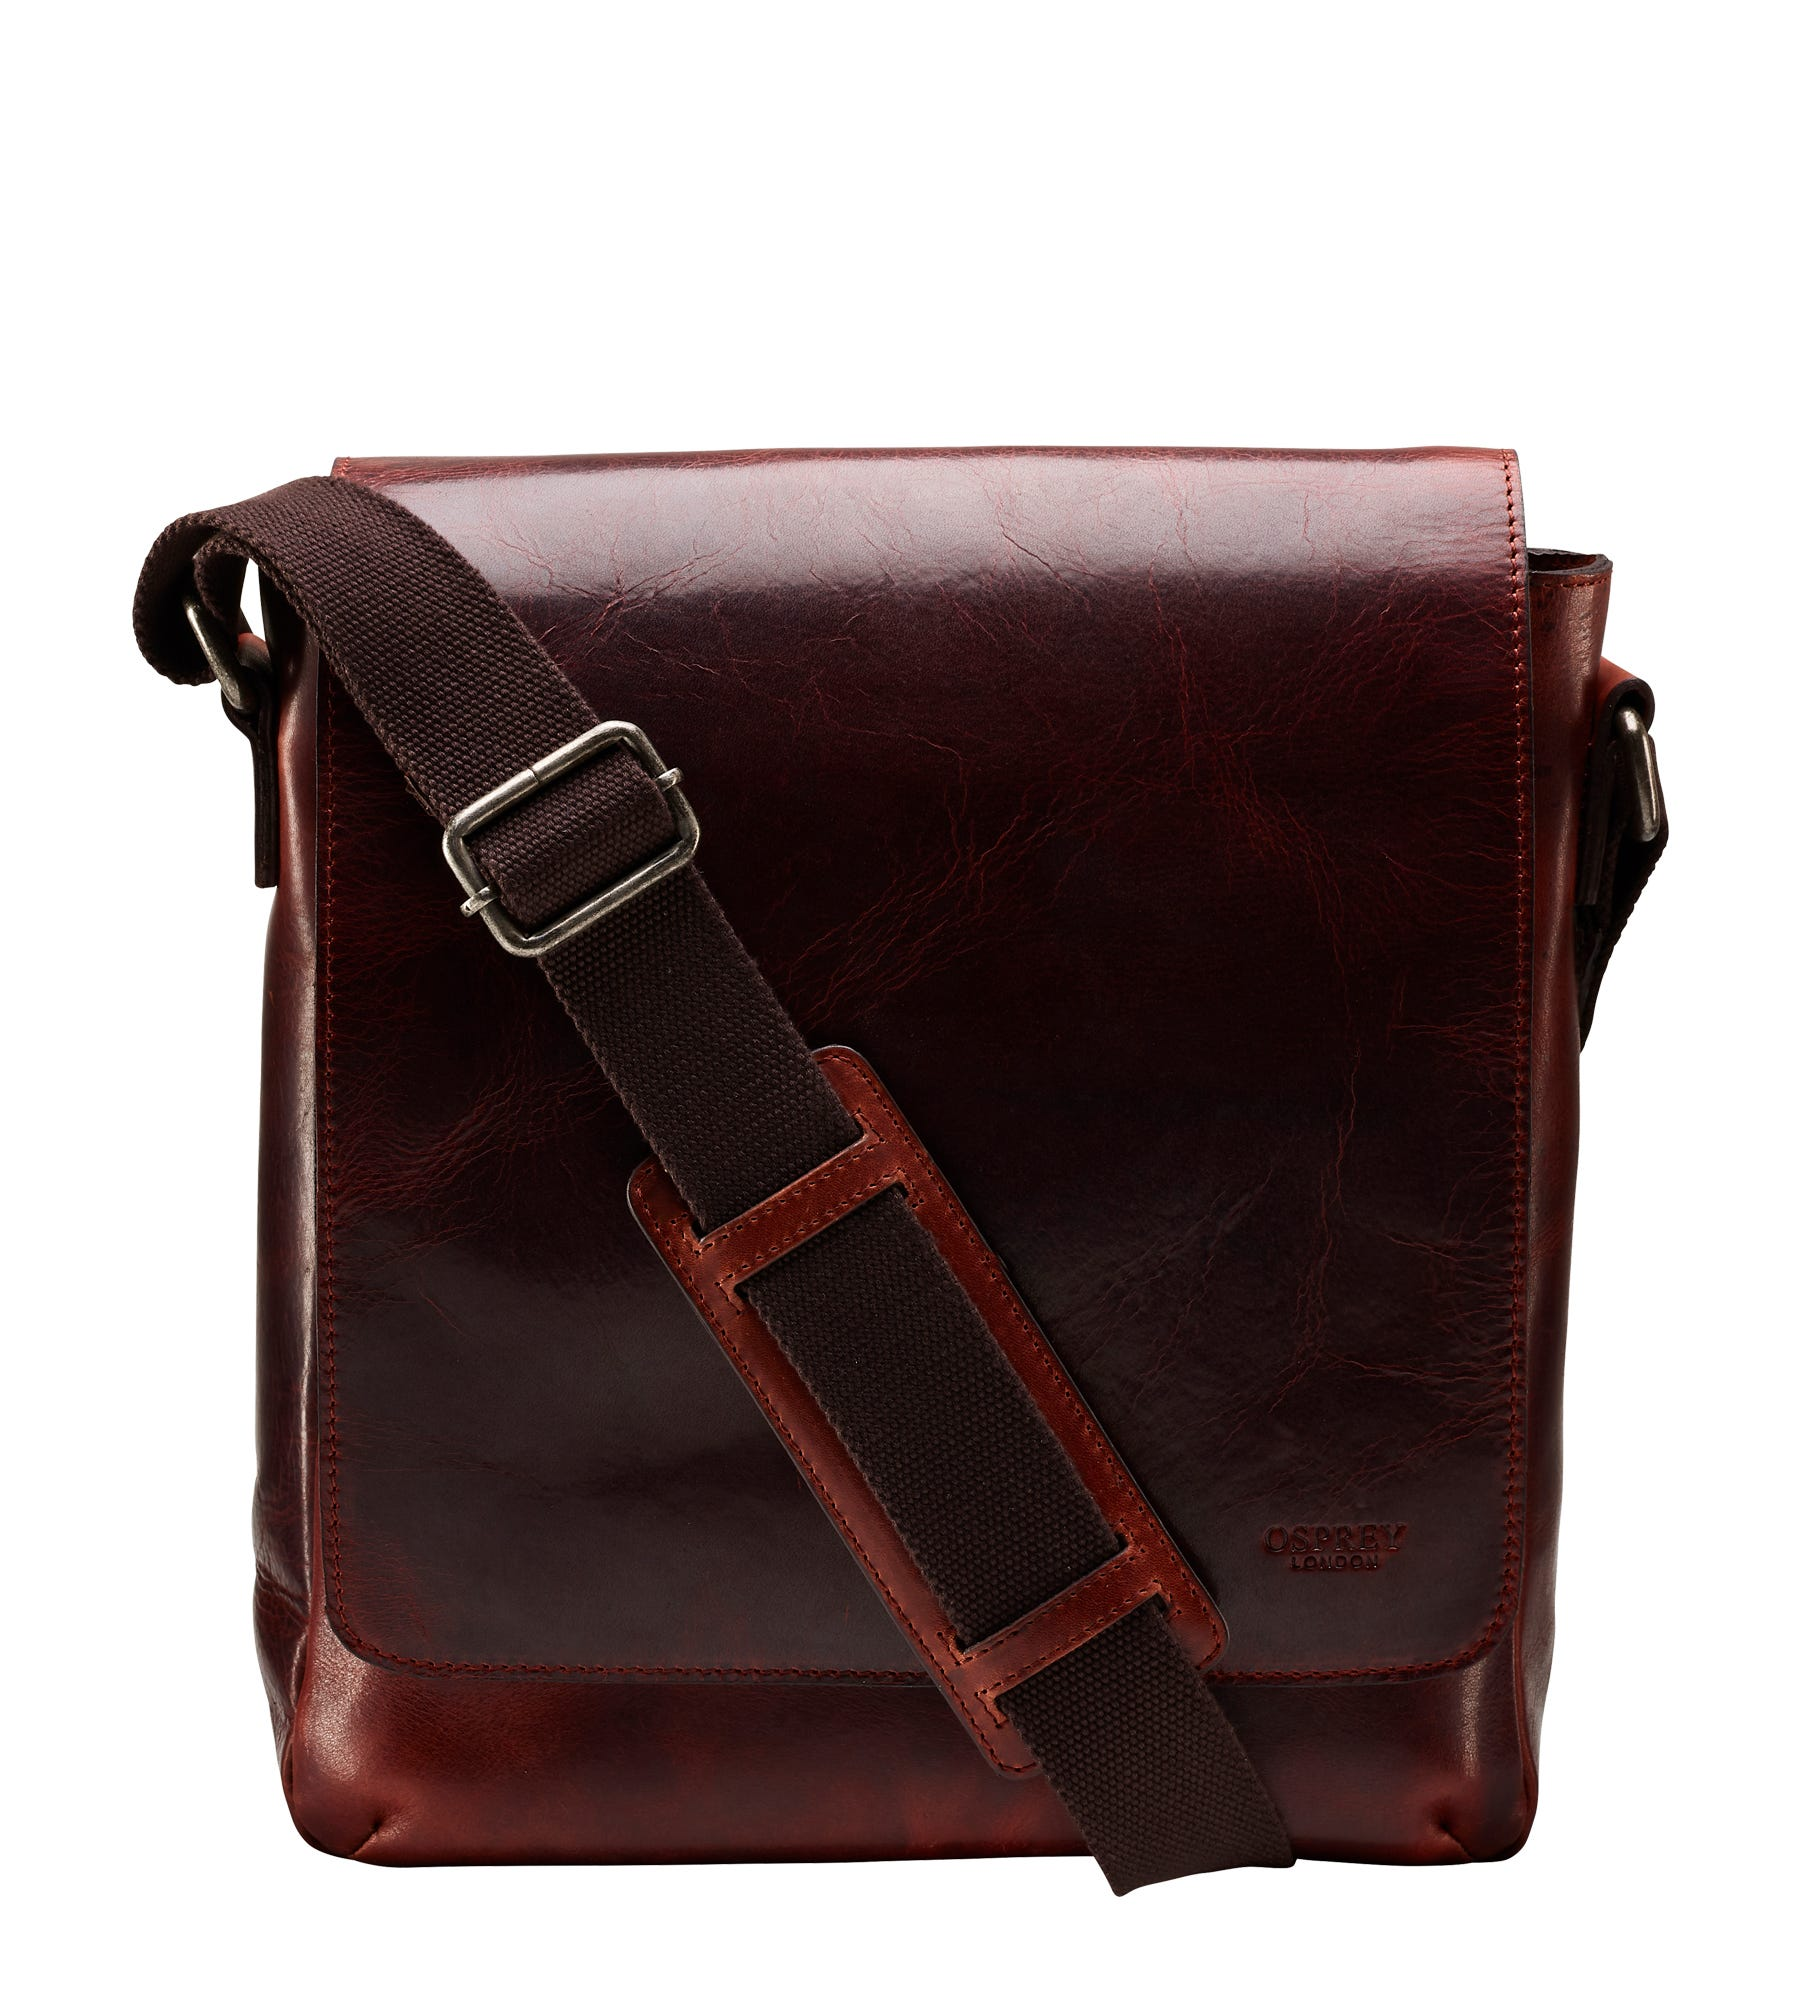 An image of The Large Baker Leather Messenger